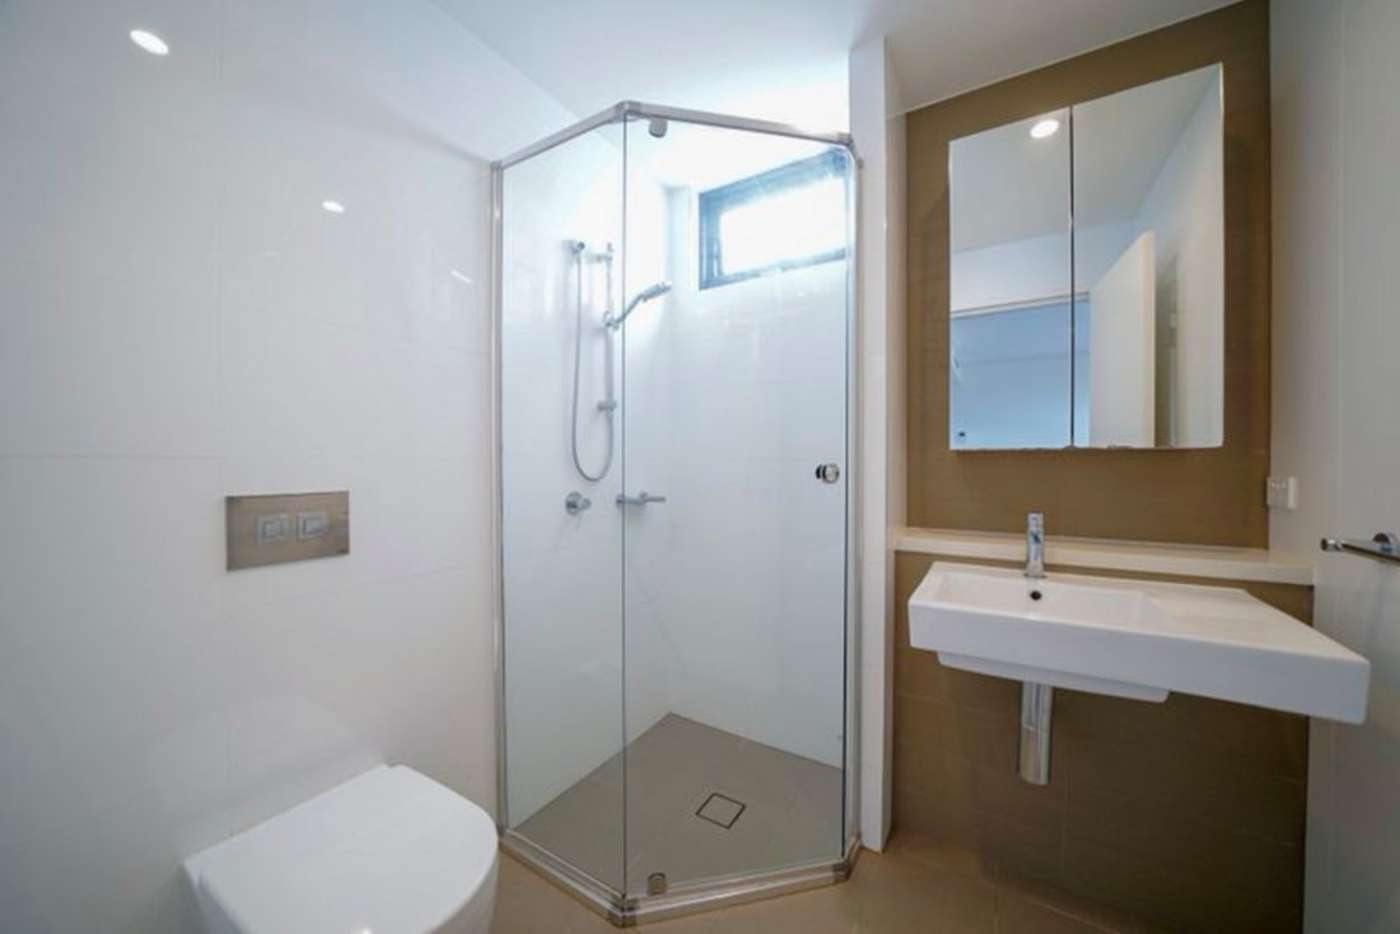 Sixth view of Homely apartment listing, 601/8 Avondale Way, Eastwood NSW 2122